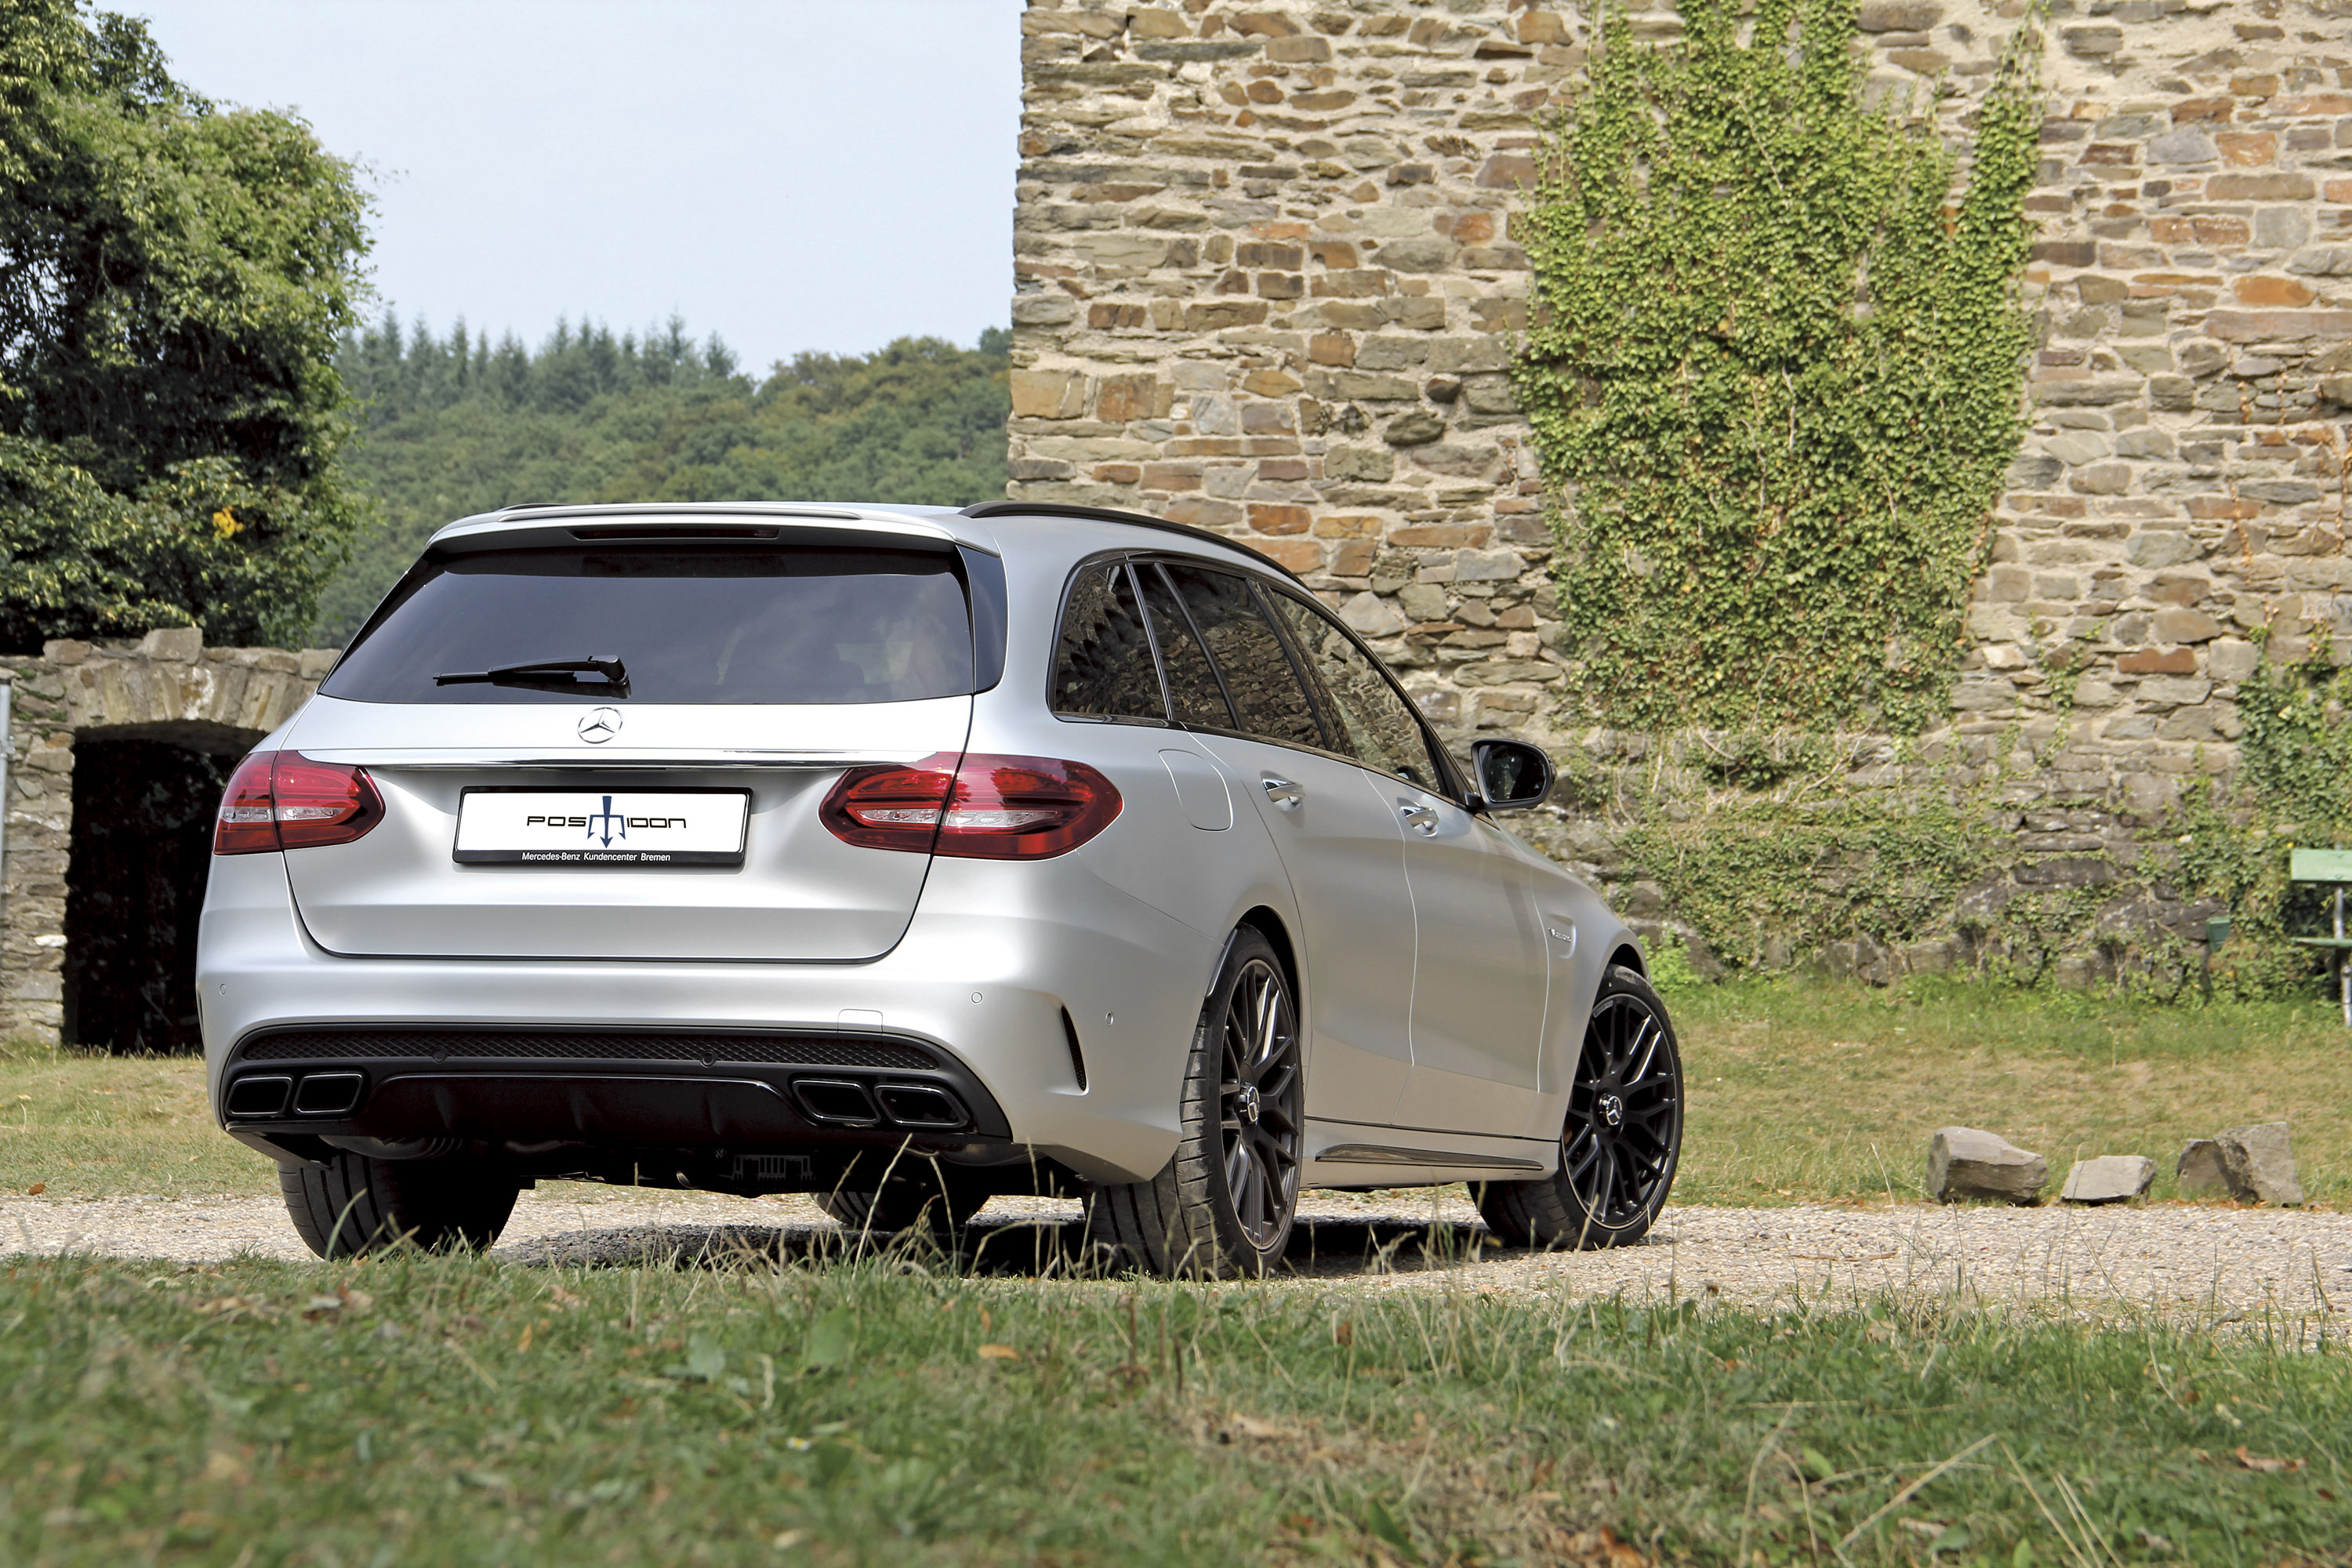 Posaidon uprates mercedes benz c63 amg station wagon for Mercedes benz c63 amg wagon